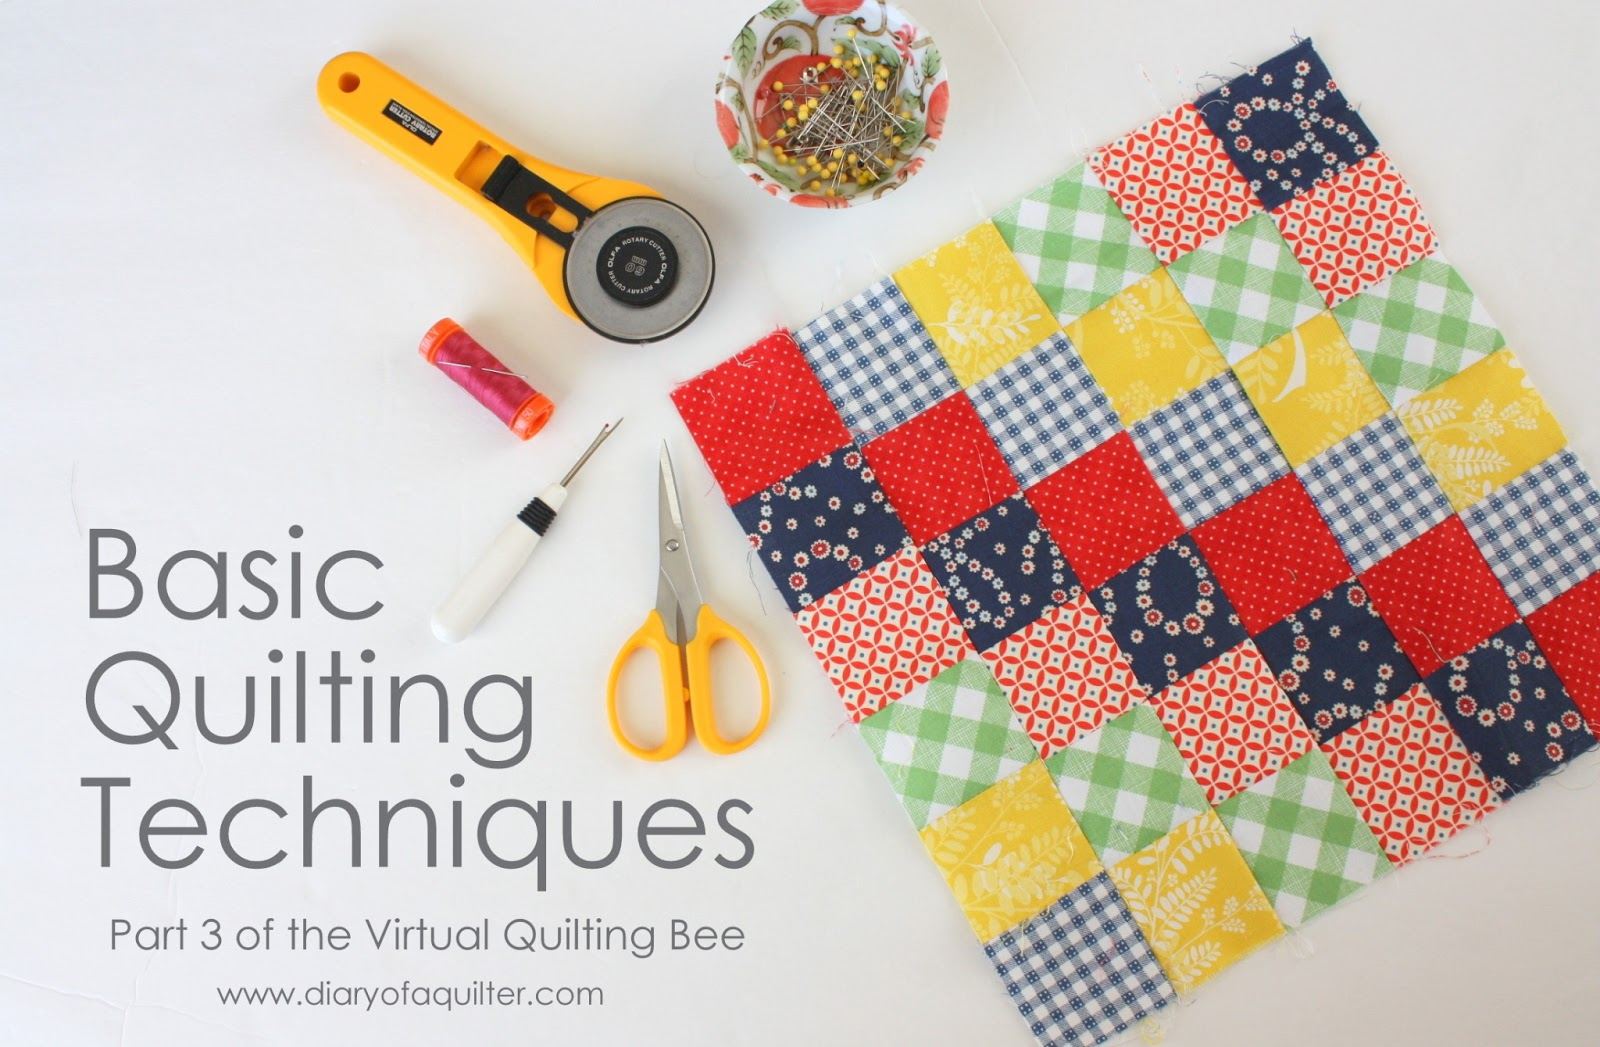 Virtual Quilting Bee - Quilt-Making Technique Basics - Diary of a ... : quilting technique - Adamdwight.com